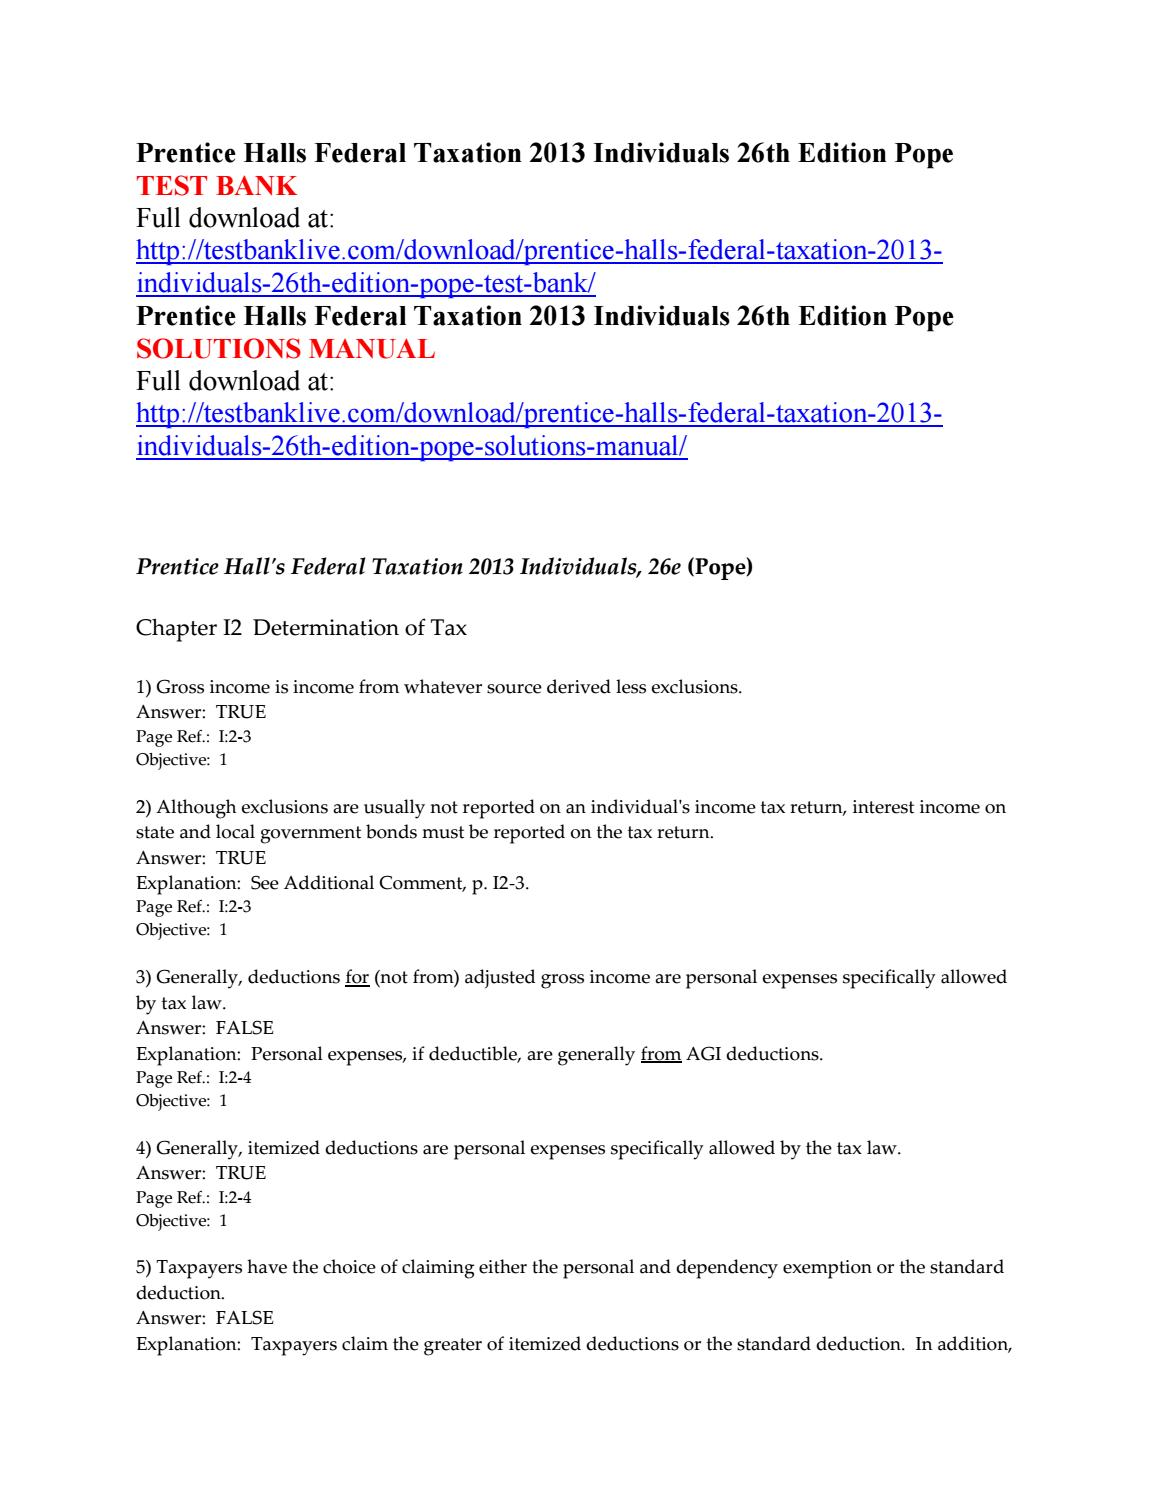 Prentice halls federal taxation 2013 individuals 26th edition pope test  bank by Caridwen123 - issuu